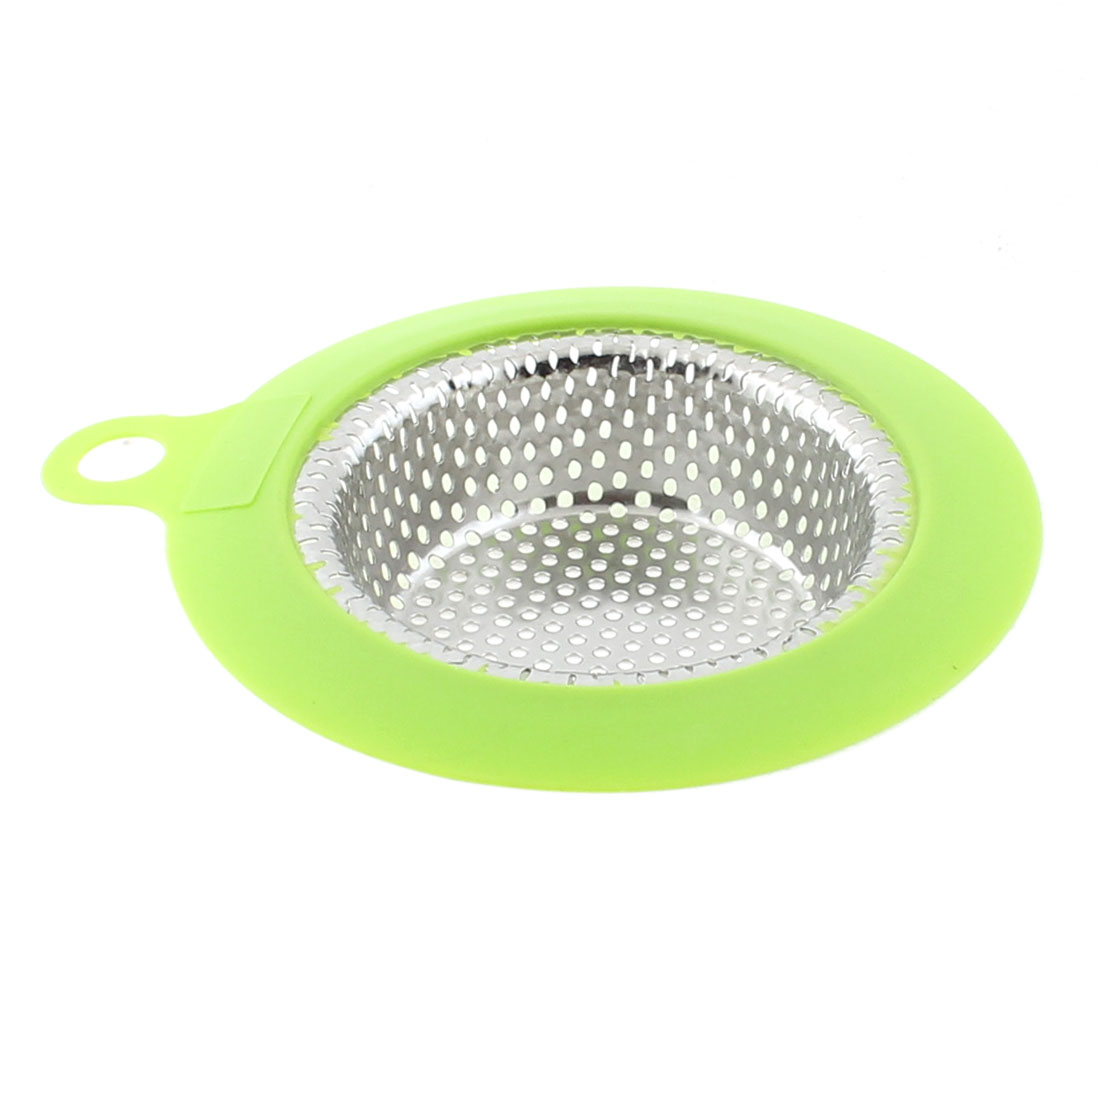 113mm Dia Home Kitchen Sink Basin Drain Waste Filter Strainer Silver Tone Green